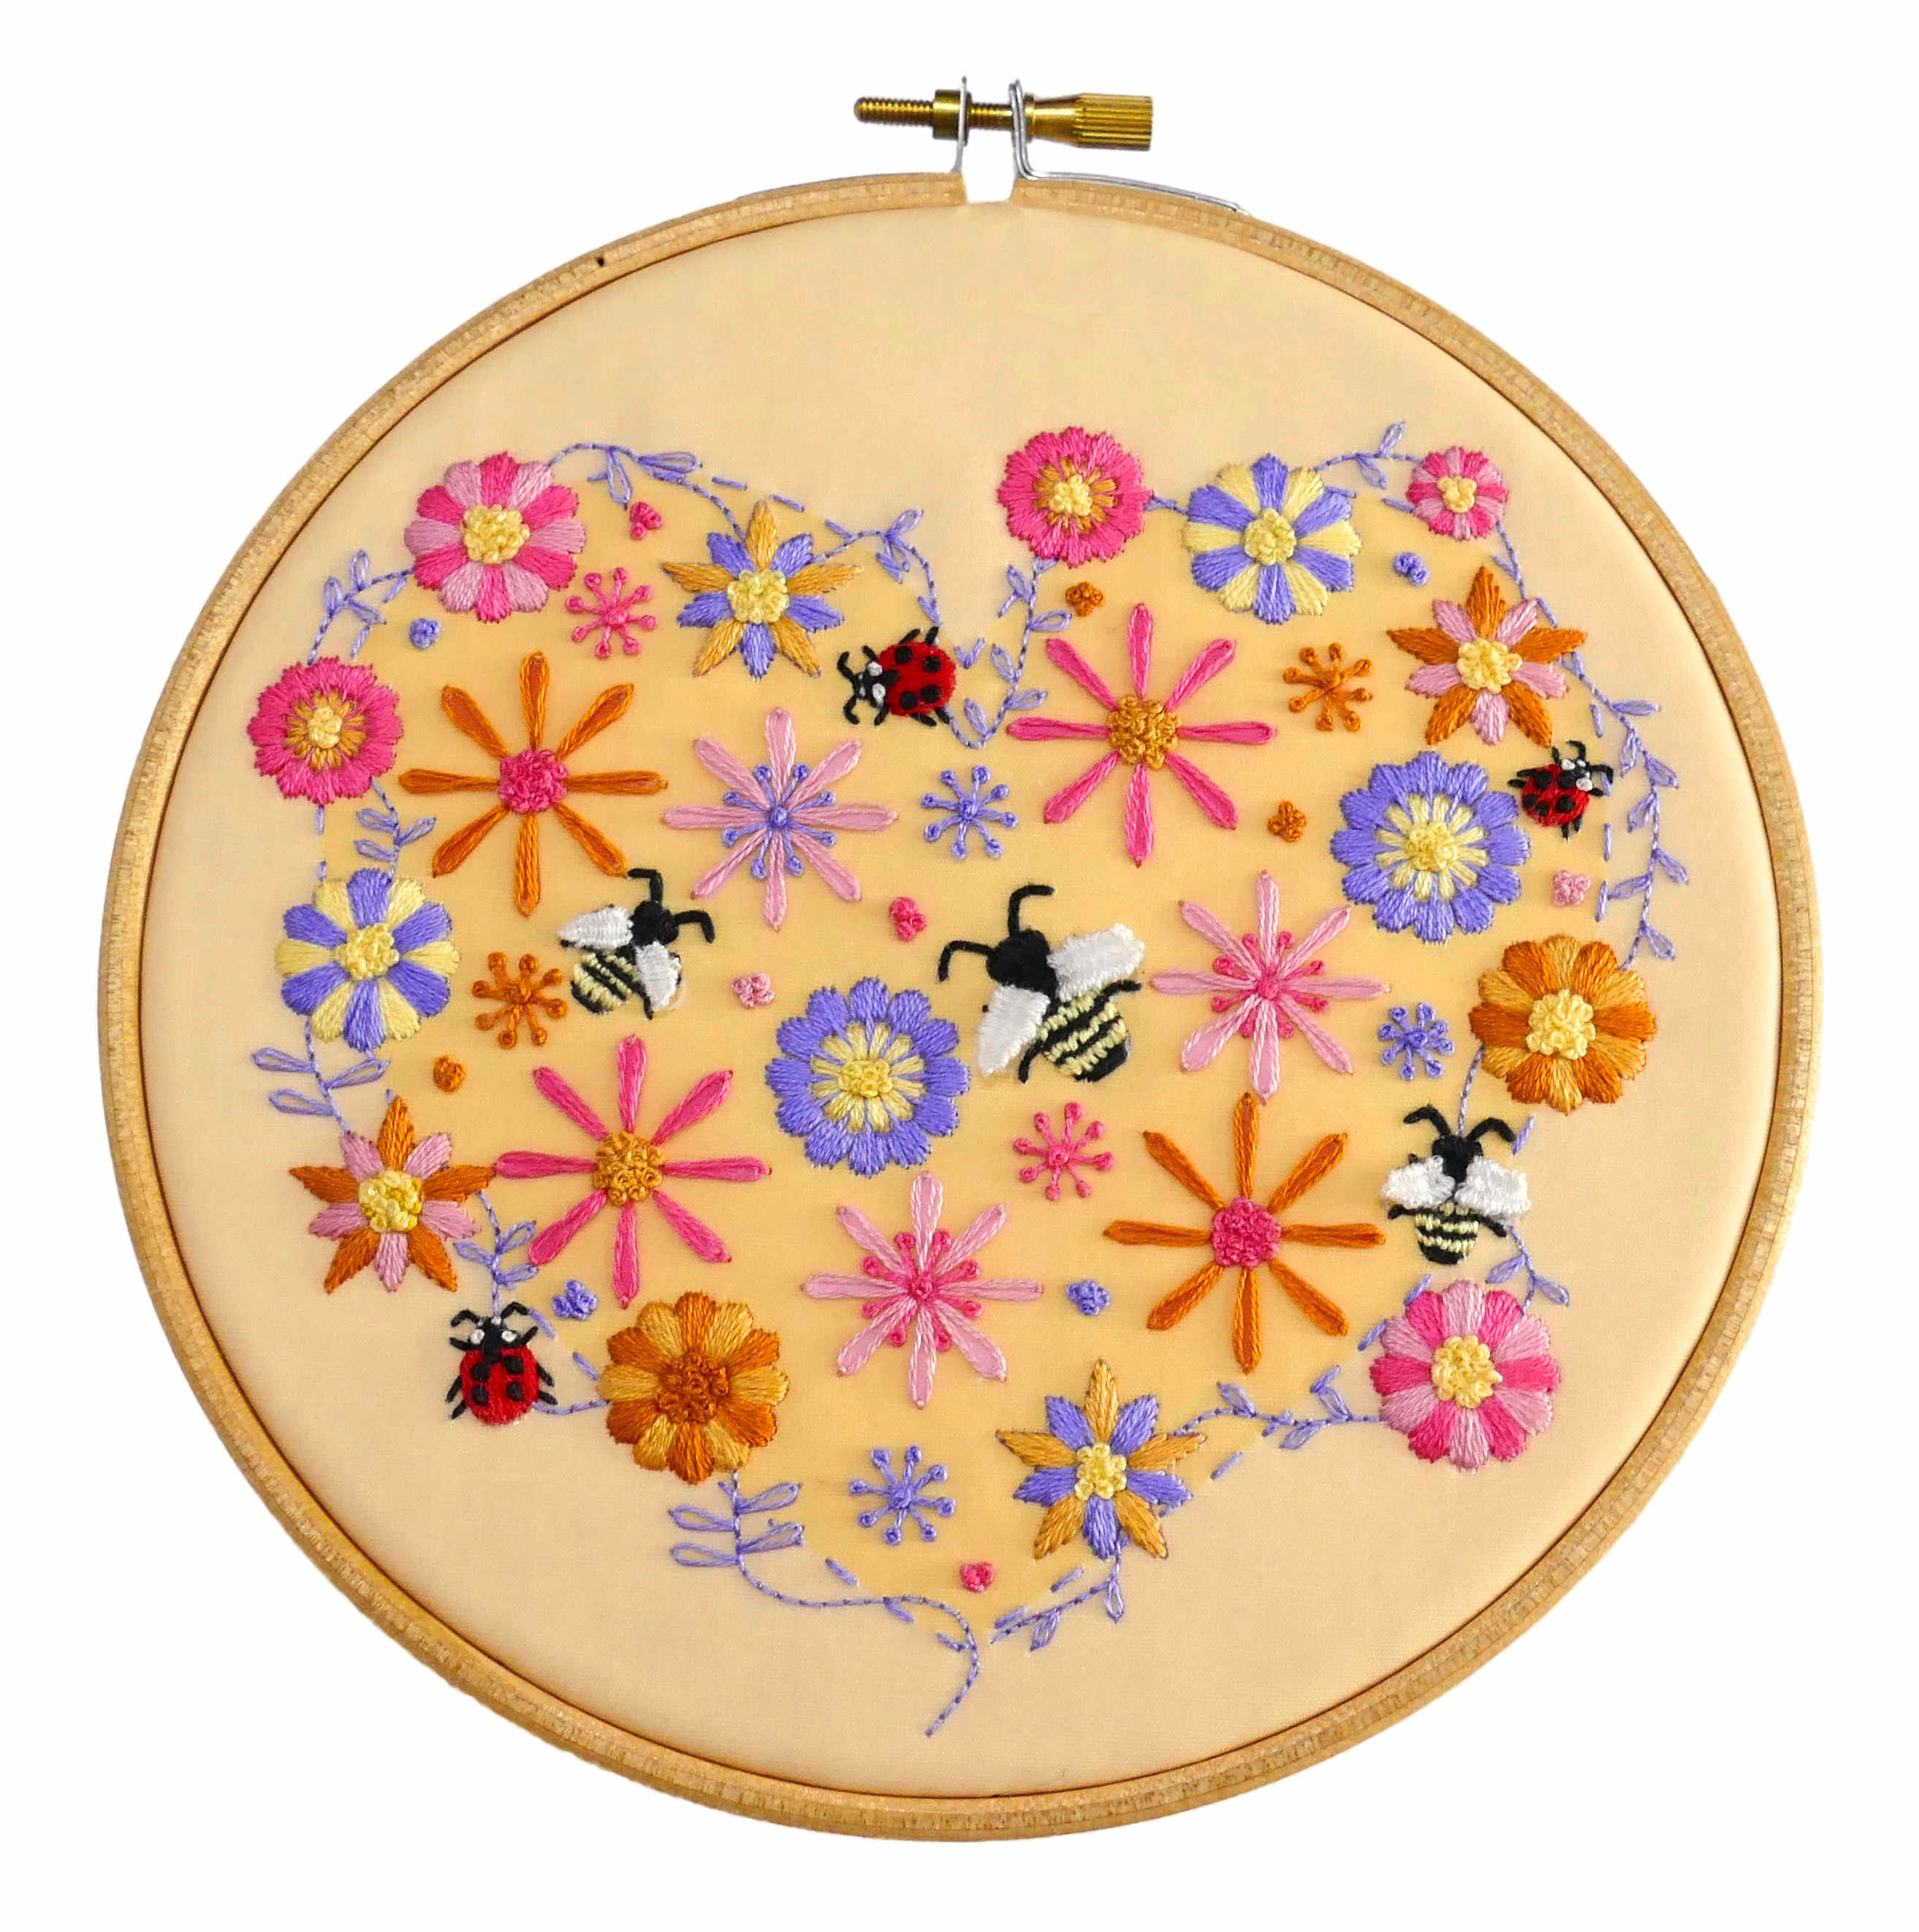 Diy embroidery pattern bees flowers designs